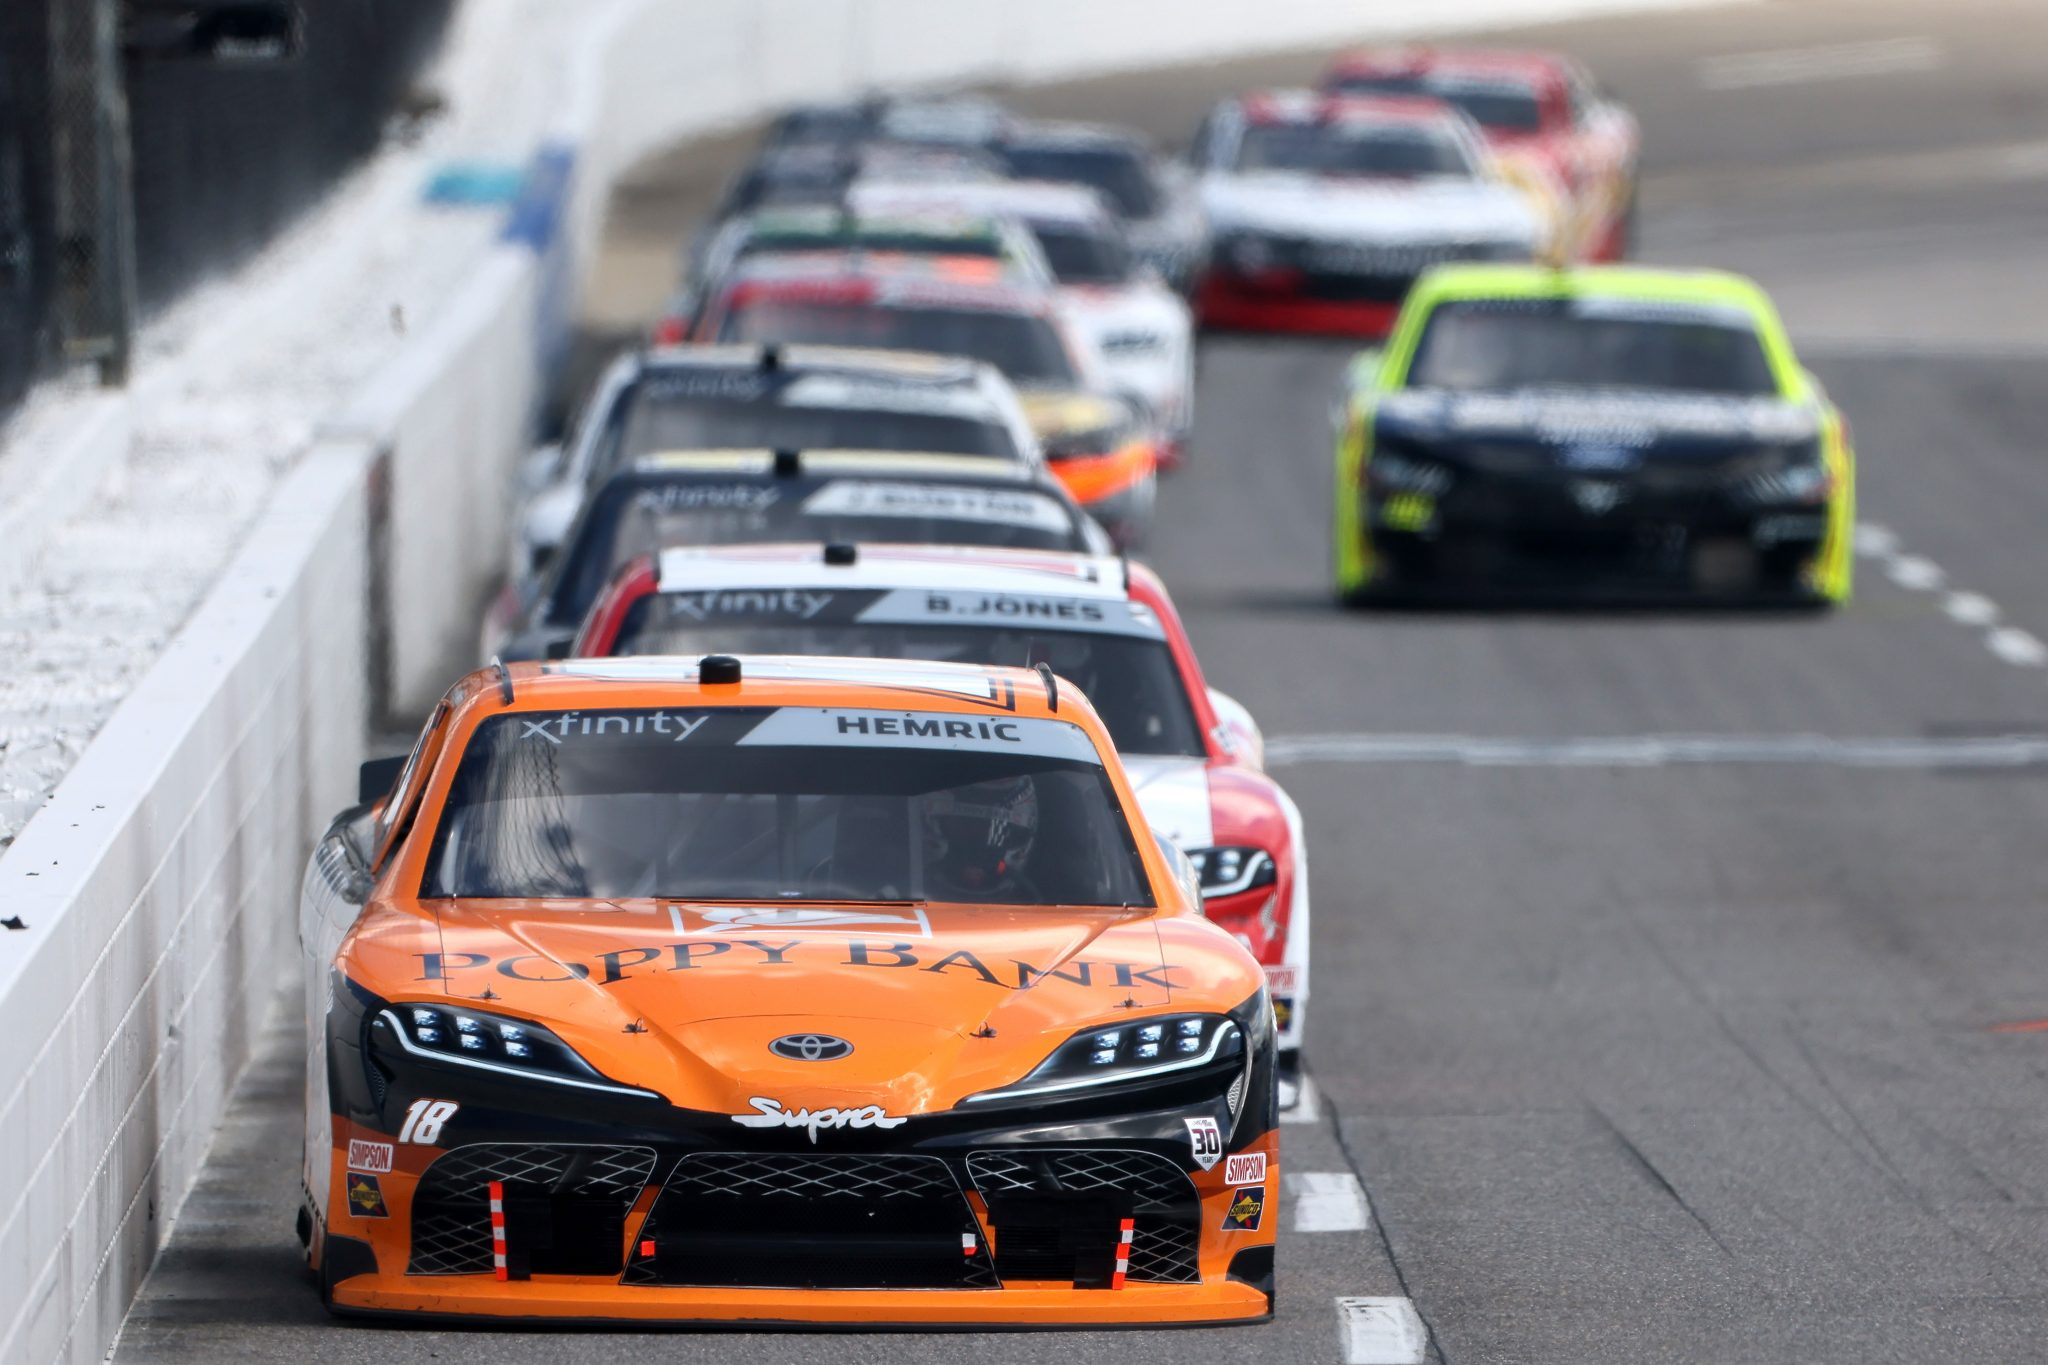 MARTINSVILLE, VIRGINIA - APRIL 11: Daniel Hemric, driver of the #18 Poppy Bank Toyota, leads the field during the NASCAR Xfinity Series Cook Out 250 at Martinsville Speedway on April 11, 2021 in Martinsville, Virginia. (Photo by James Gilbert/Getty Images) | Getty Images